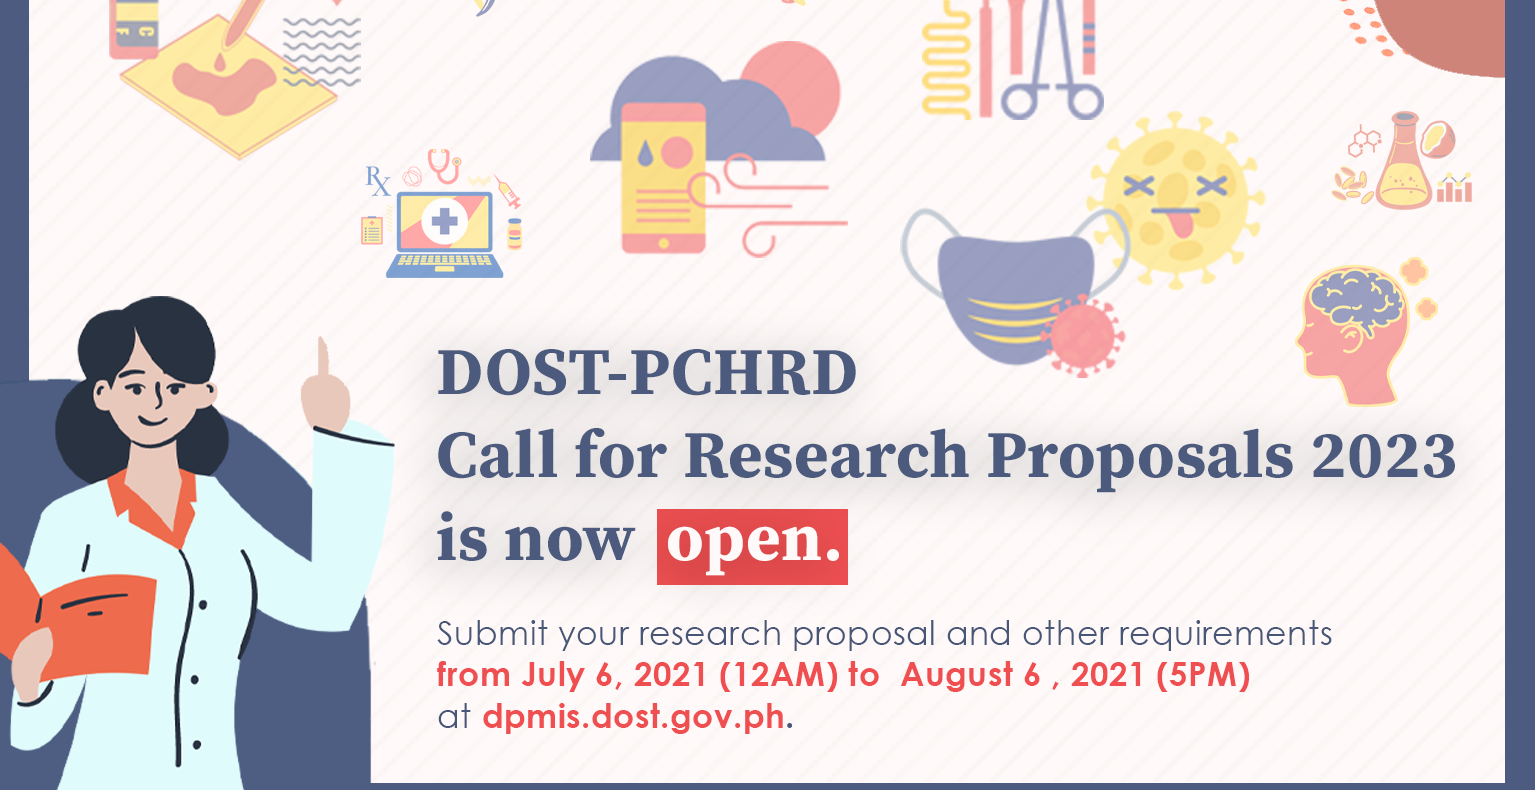 DOST PCHRD Call for Research Proposals 2023 now open